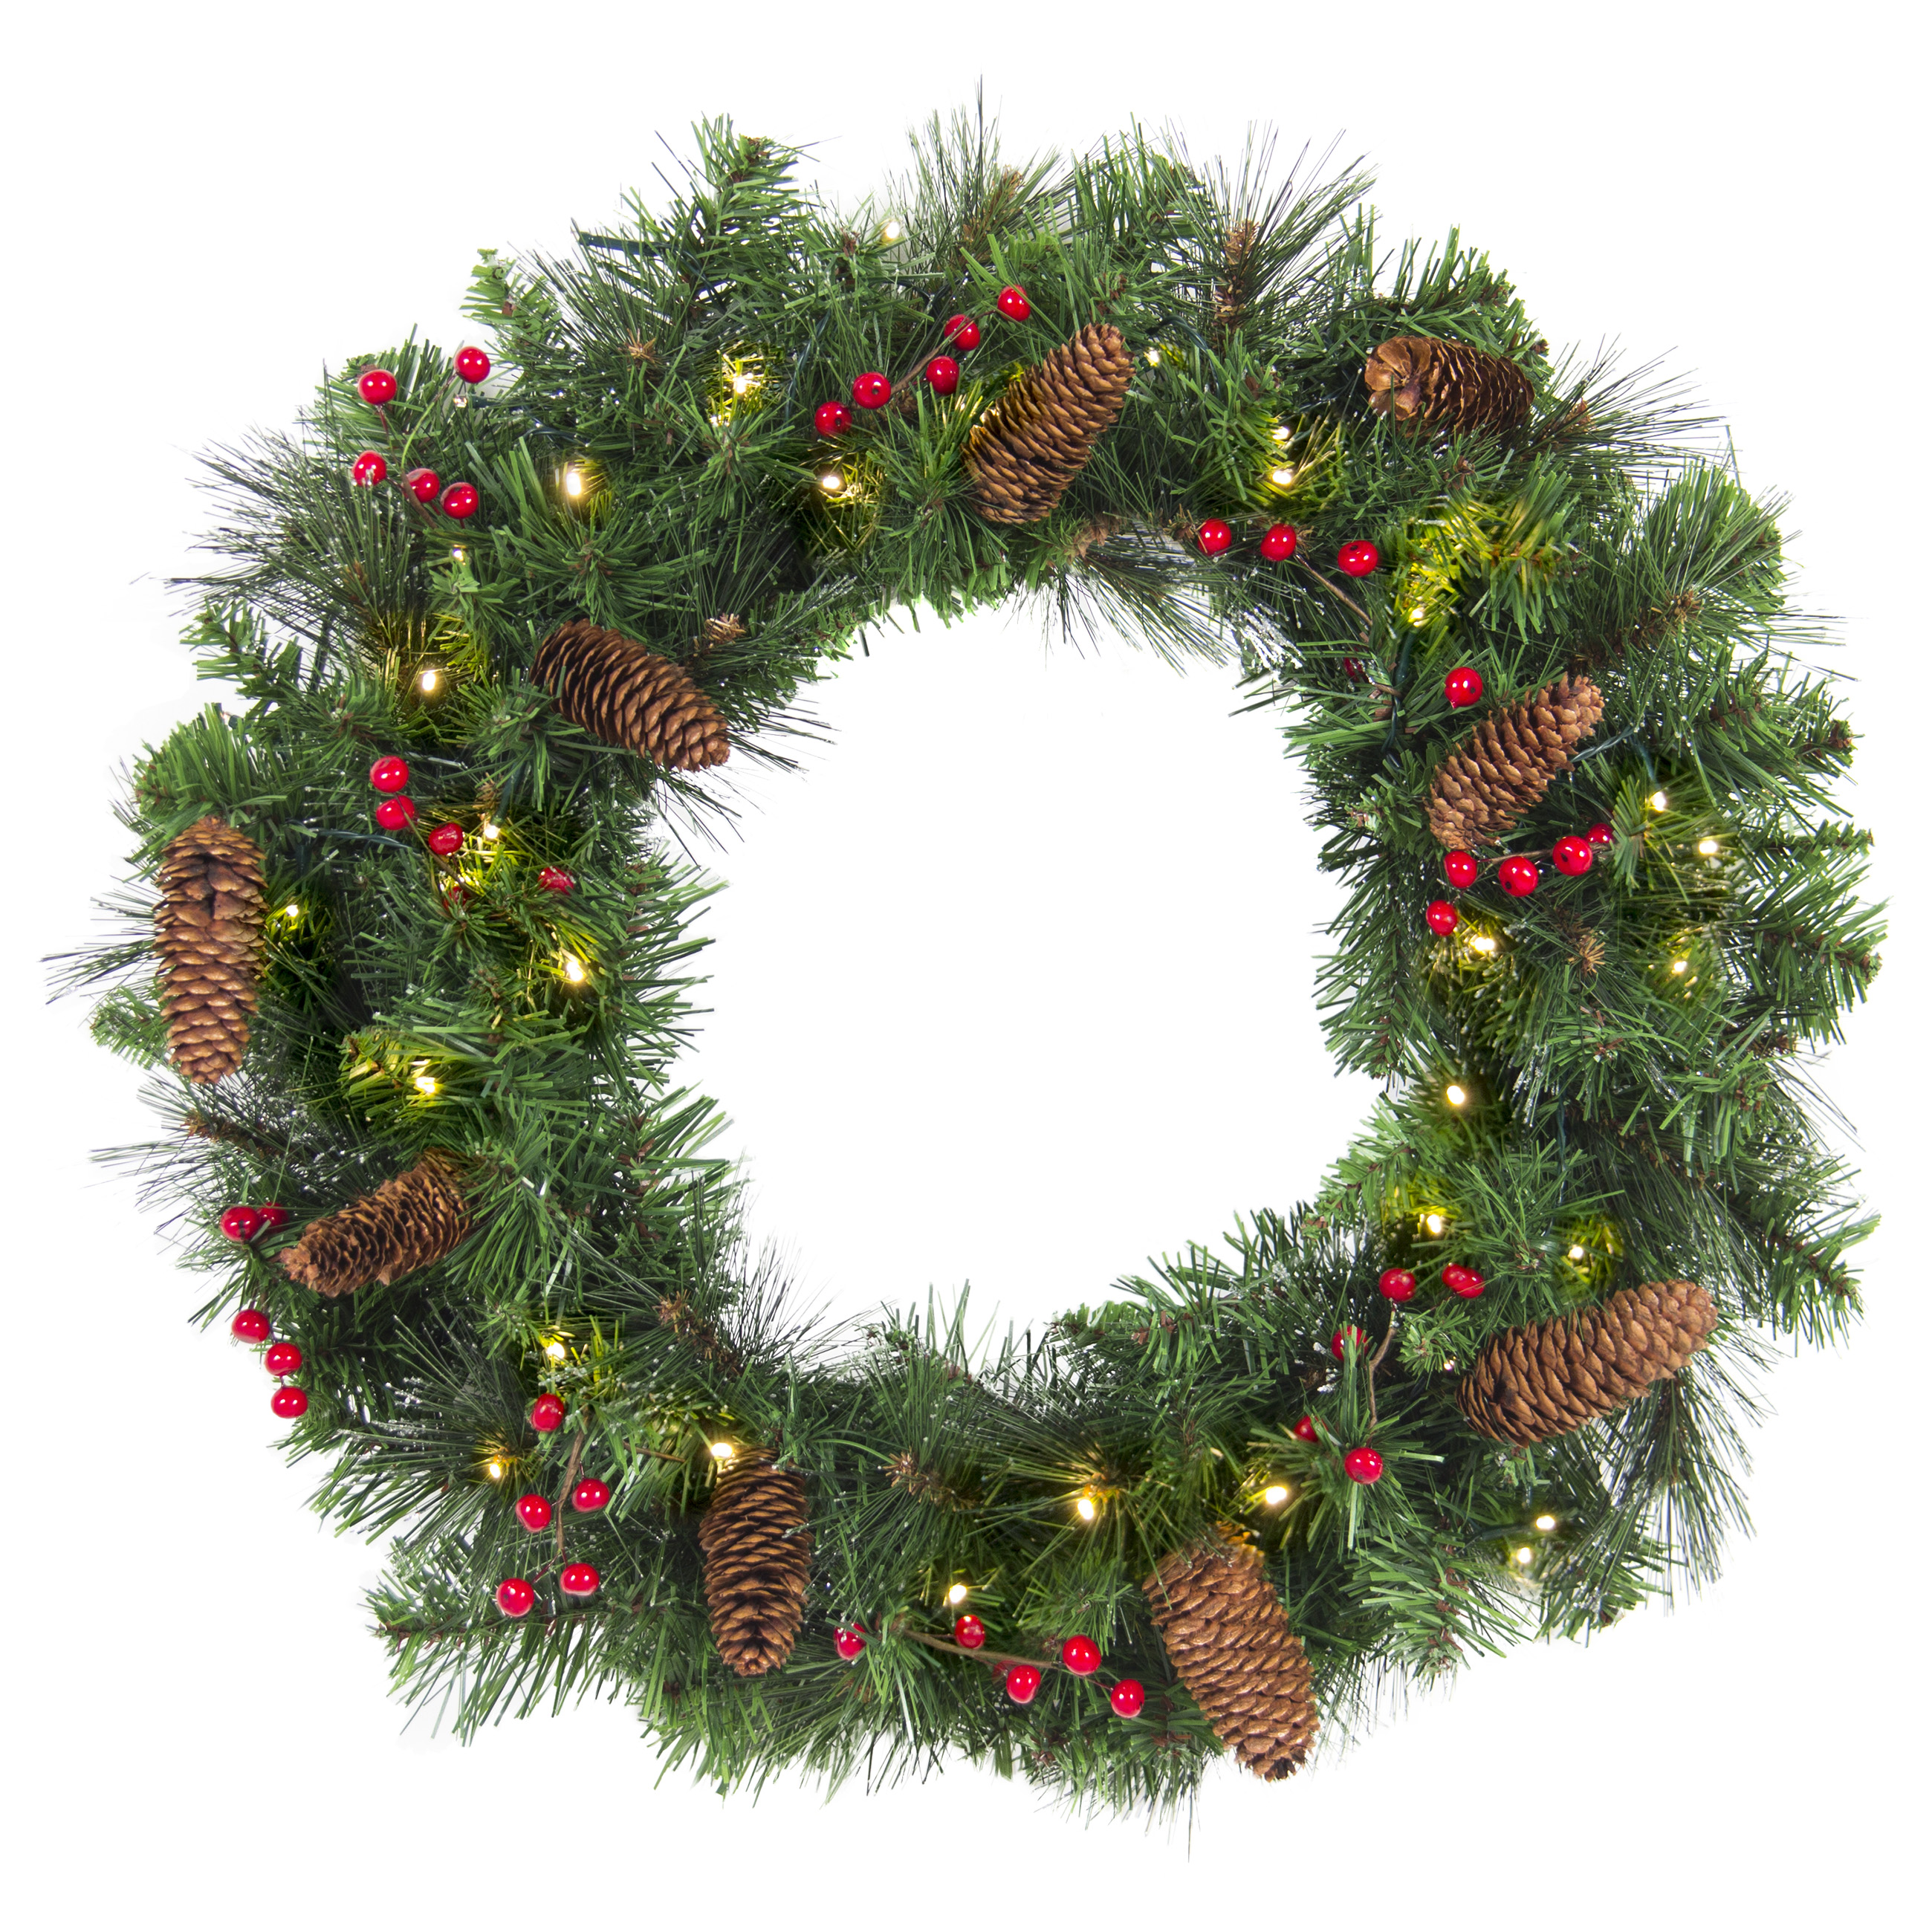 "Best Choice Products 24"" Spruce Christmas Wreath w/ 50 UL Certified Lights, Silver Bristles, Pine Cones, Red Berries"